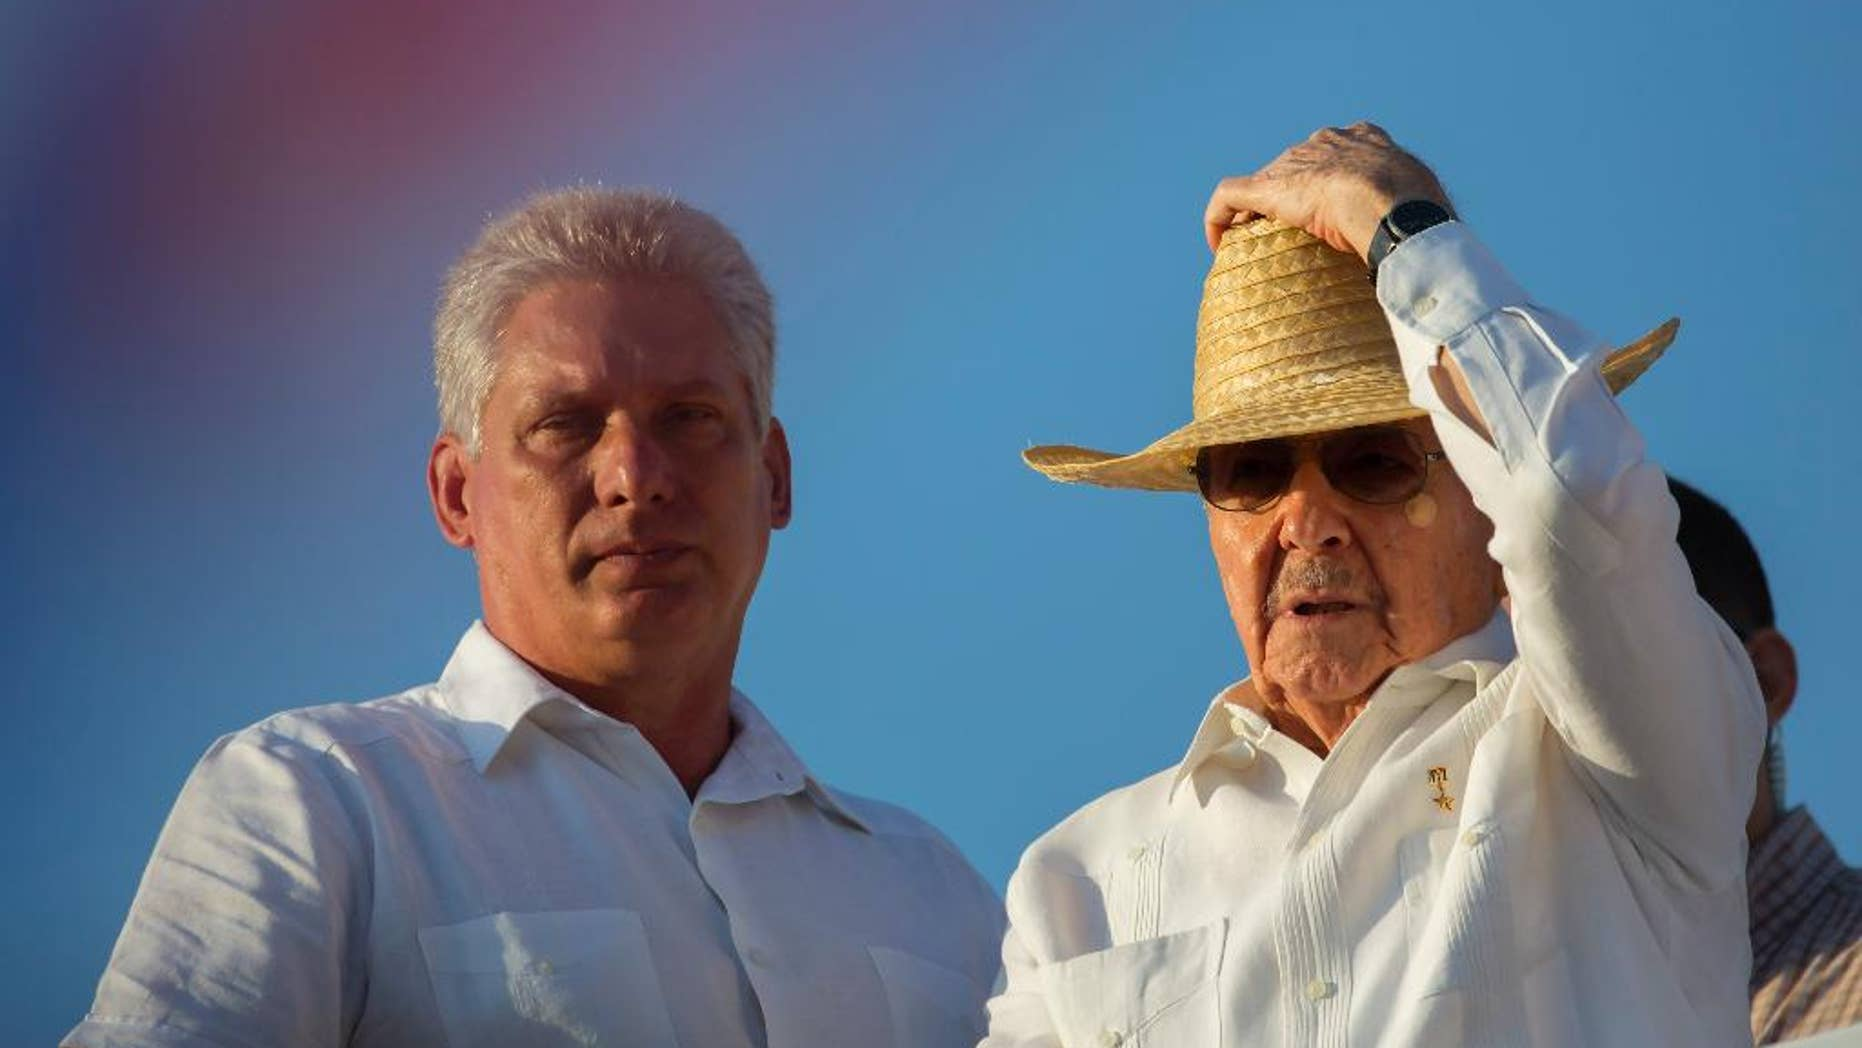 FILE - In this May 1, 2016 file photo, Cuba's First Vice President Miguel Diaz-Canel, left, stands with President Raul Castro during the May Day parade in Havana, Cuba. Diaz-Canel, an engineer by training who began his career as a provincial bureaucrat, is expected in 2018 to assume one of Raul Castro's roles: the presidency. Castro plans to remain first secretary of the Cuban Communist Party, a potentially more powerful position, until at least 2021.  (AP Photo/Ramon Espinosa, File)